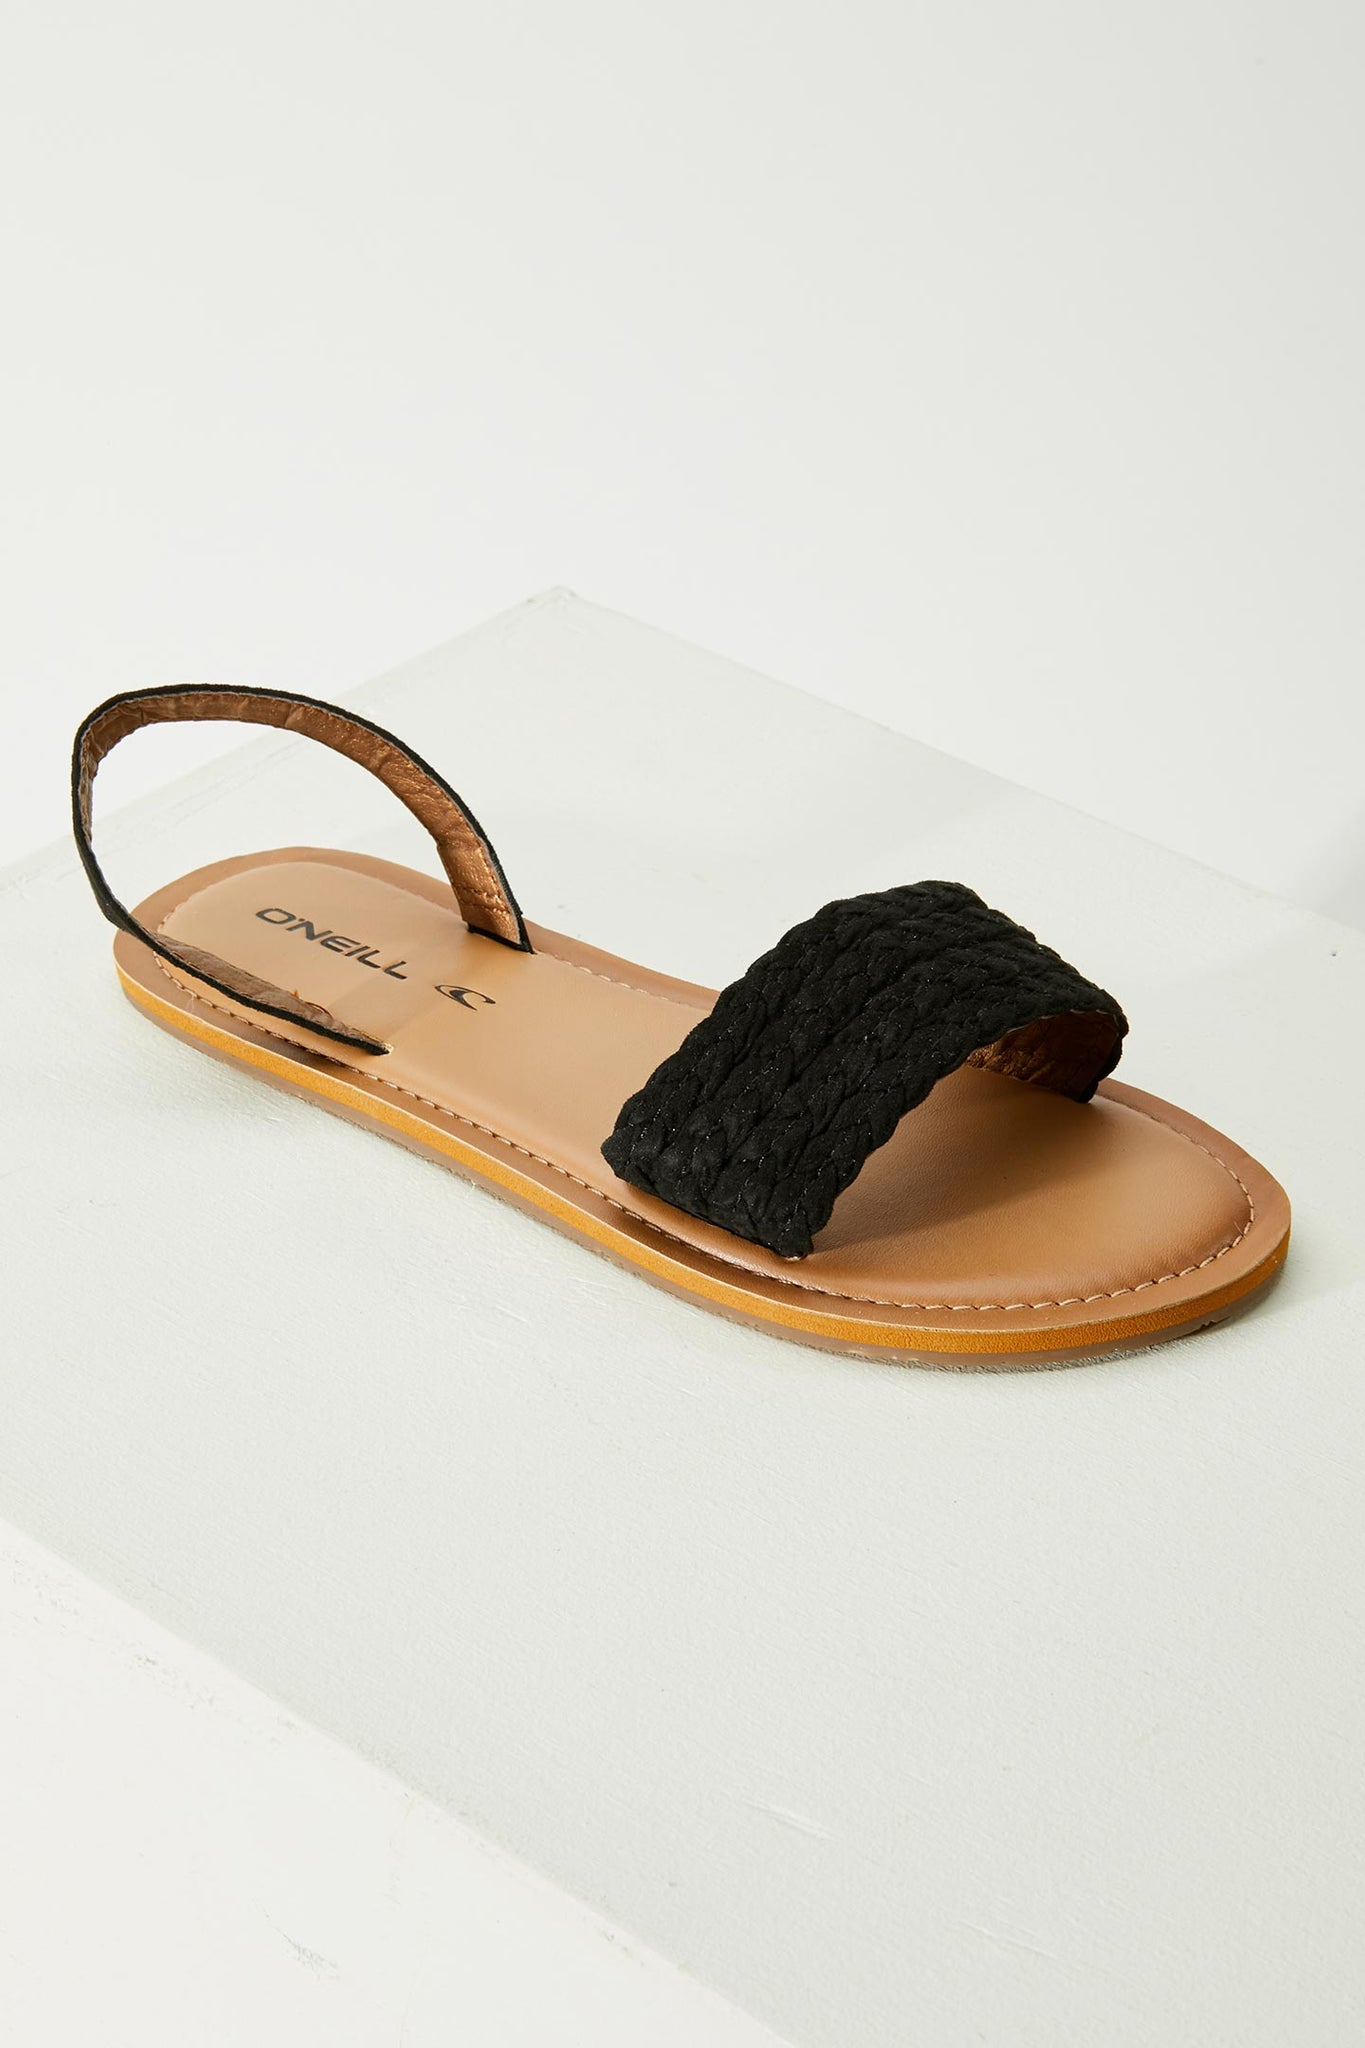 Seal Beach Sandals - Black | O'Neill